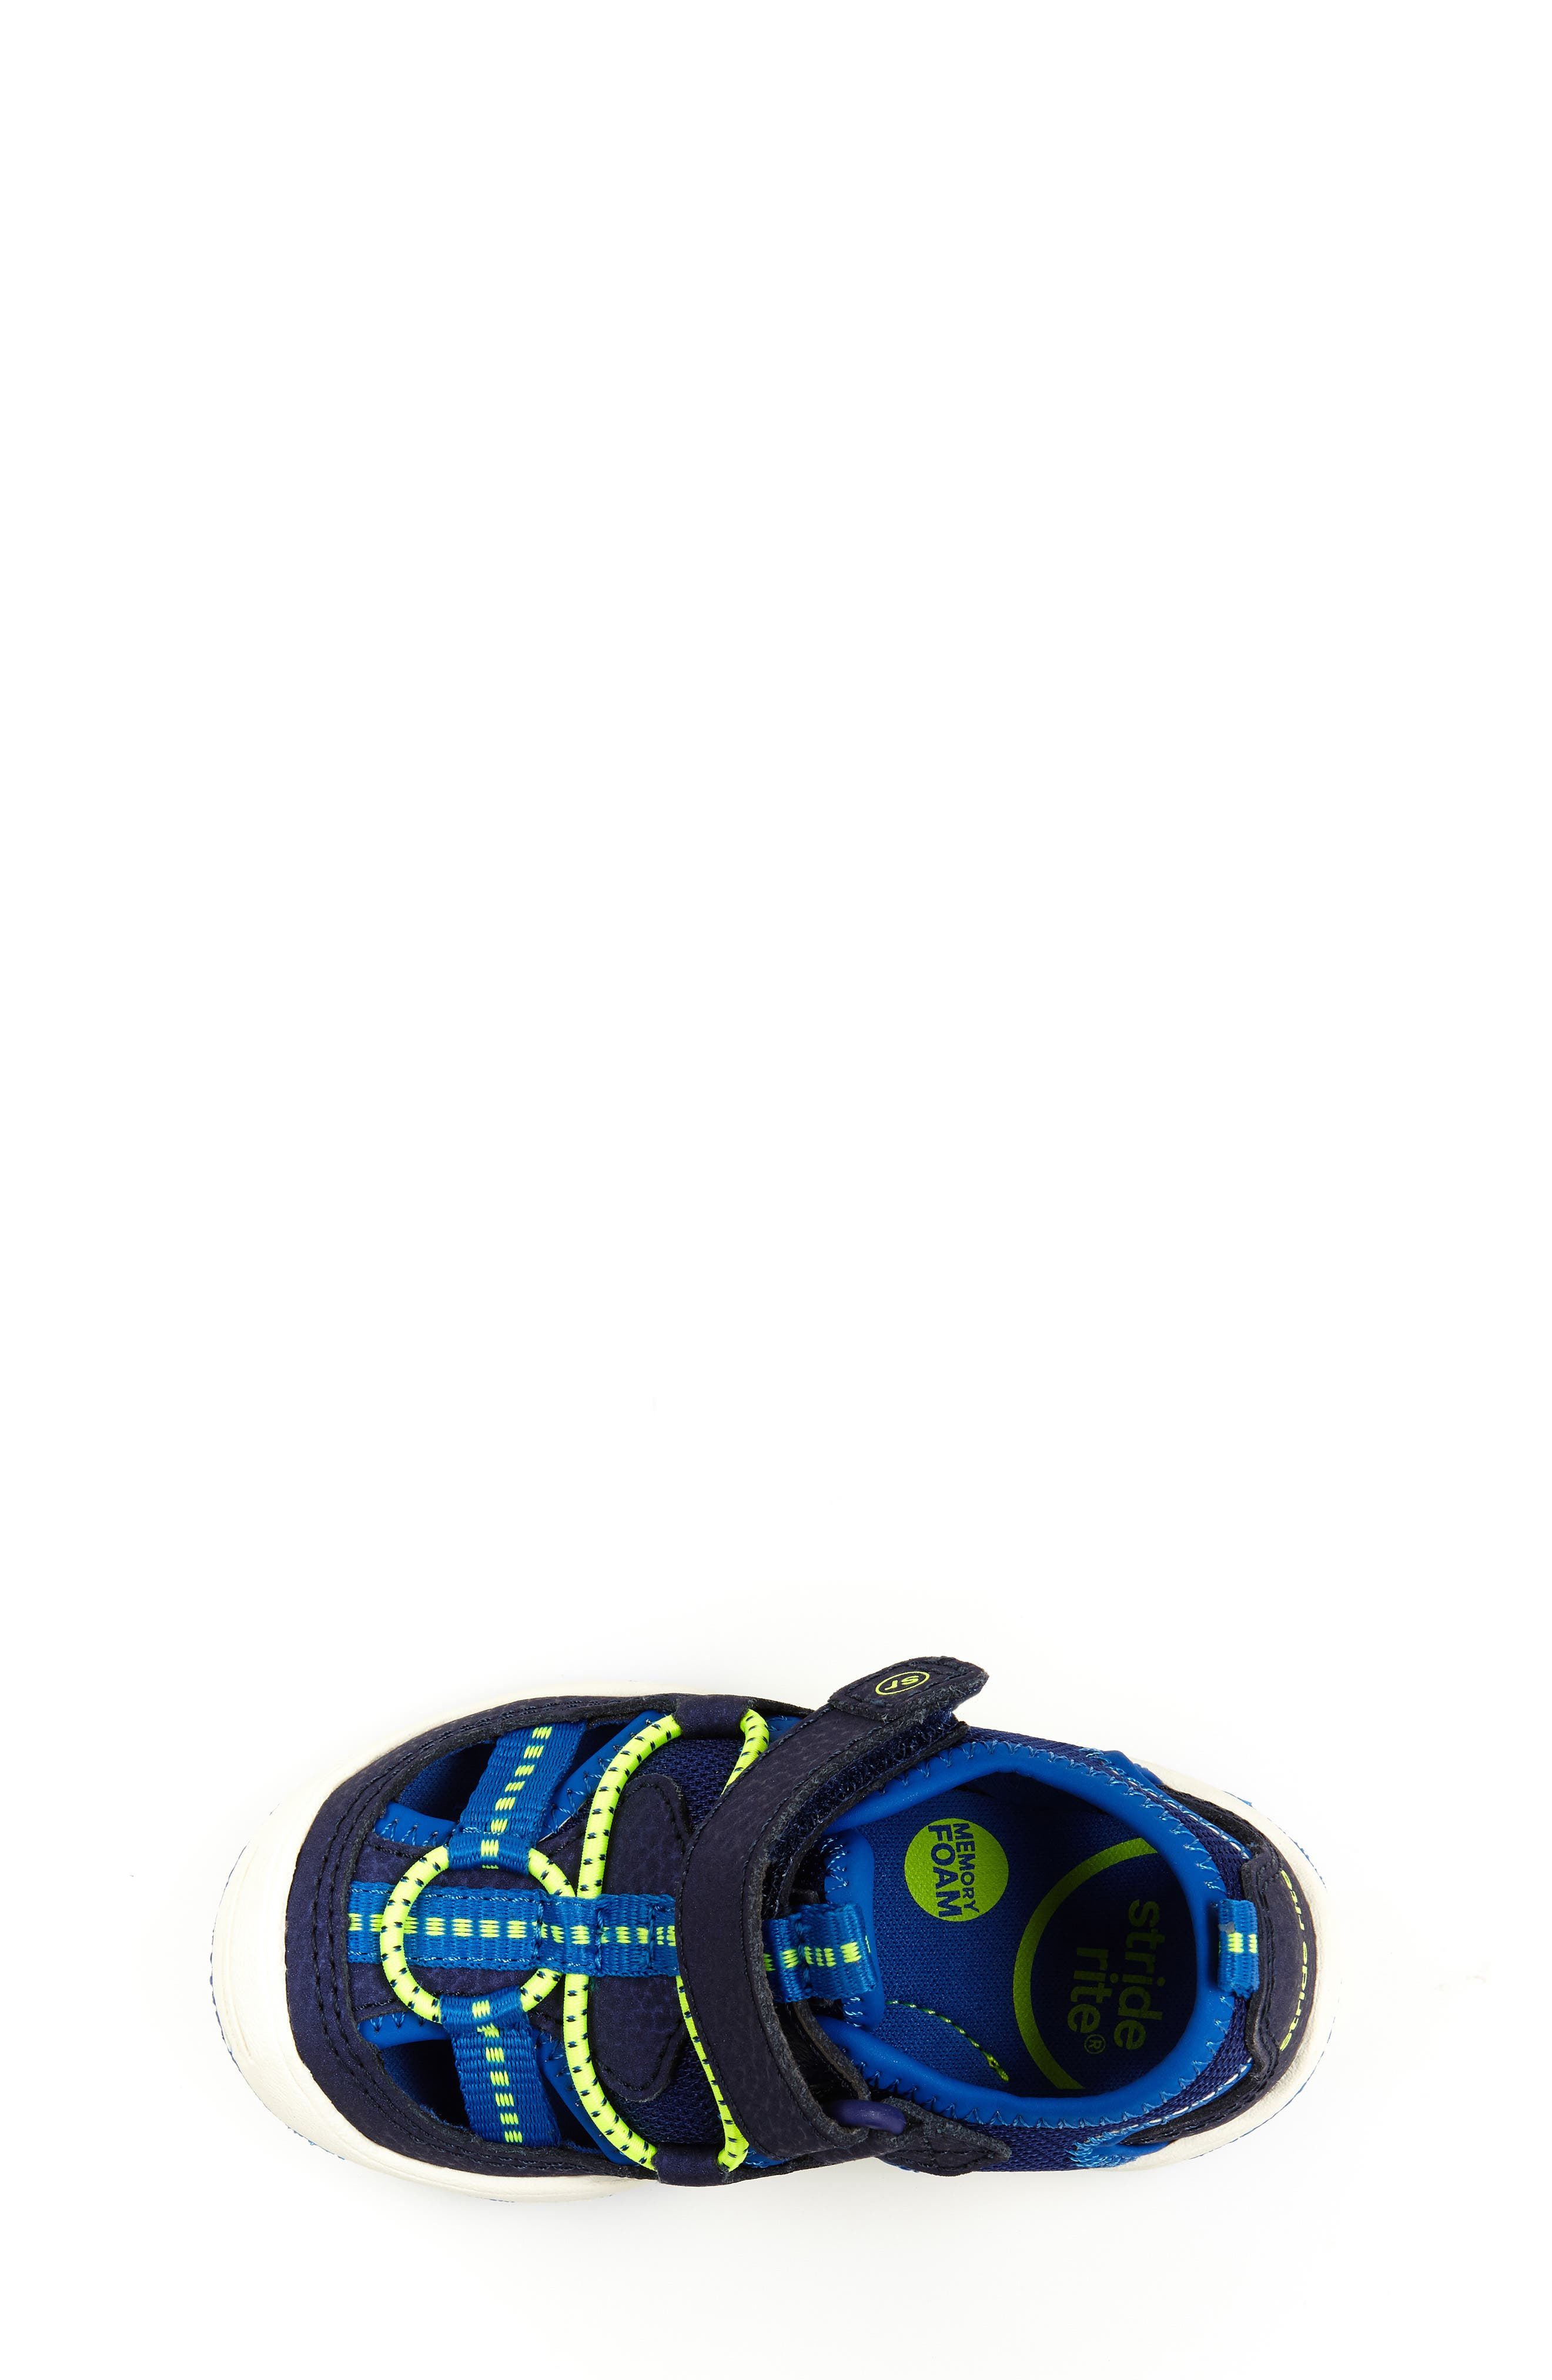 STRIDE RITE,                             Marina Water Sandal,                             Alternate thumbnail 4, color,                             ELECTRIC BLUE LEATHER/ TEXTILE